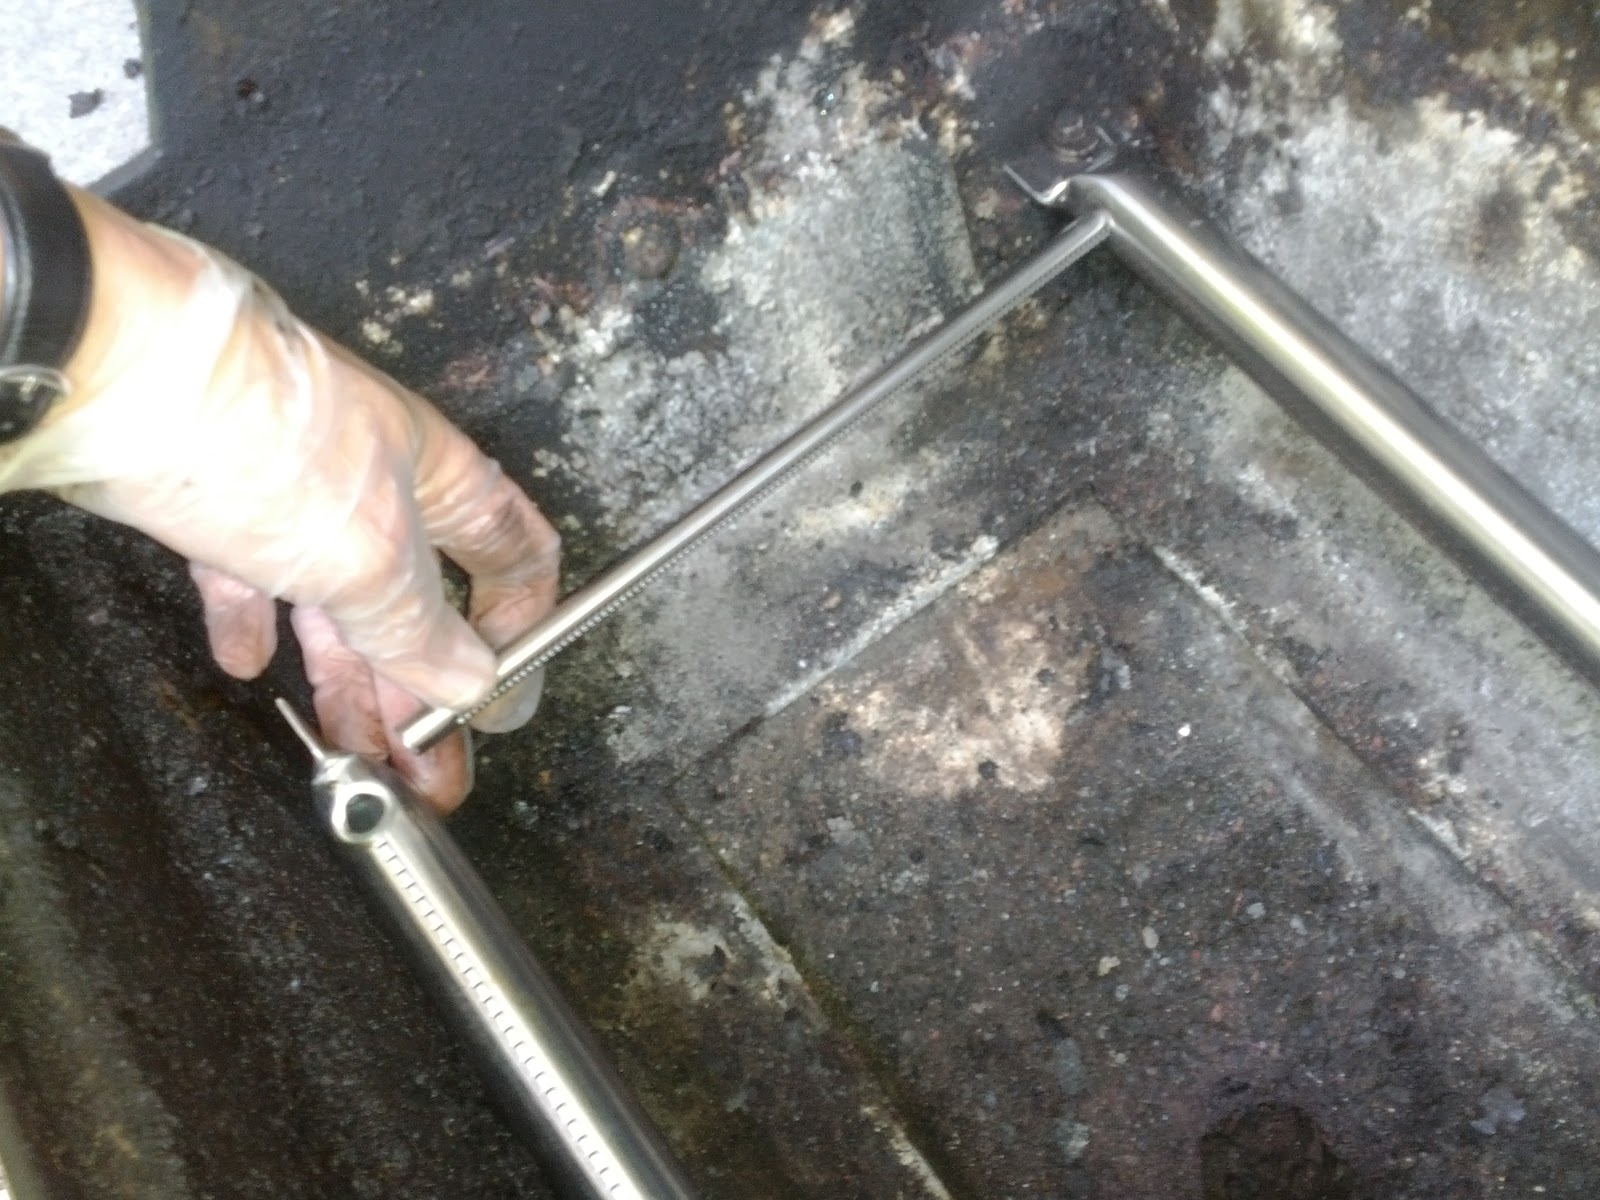 Weber Gas Grill Parts >> EfficiencyGeek: Replace your Weber Grill Burners and Igniter